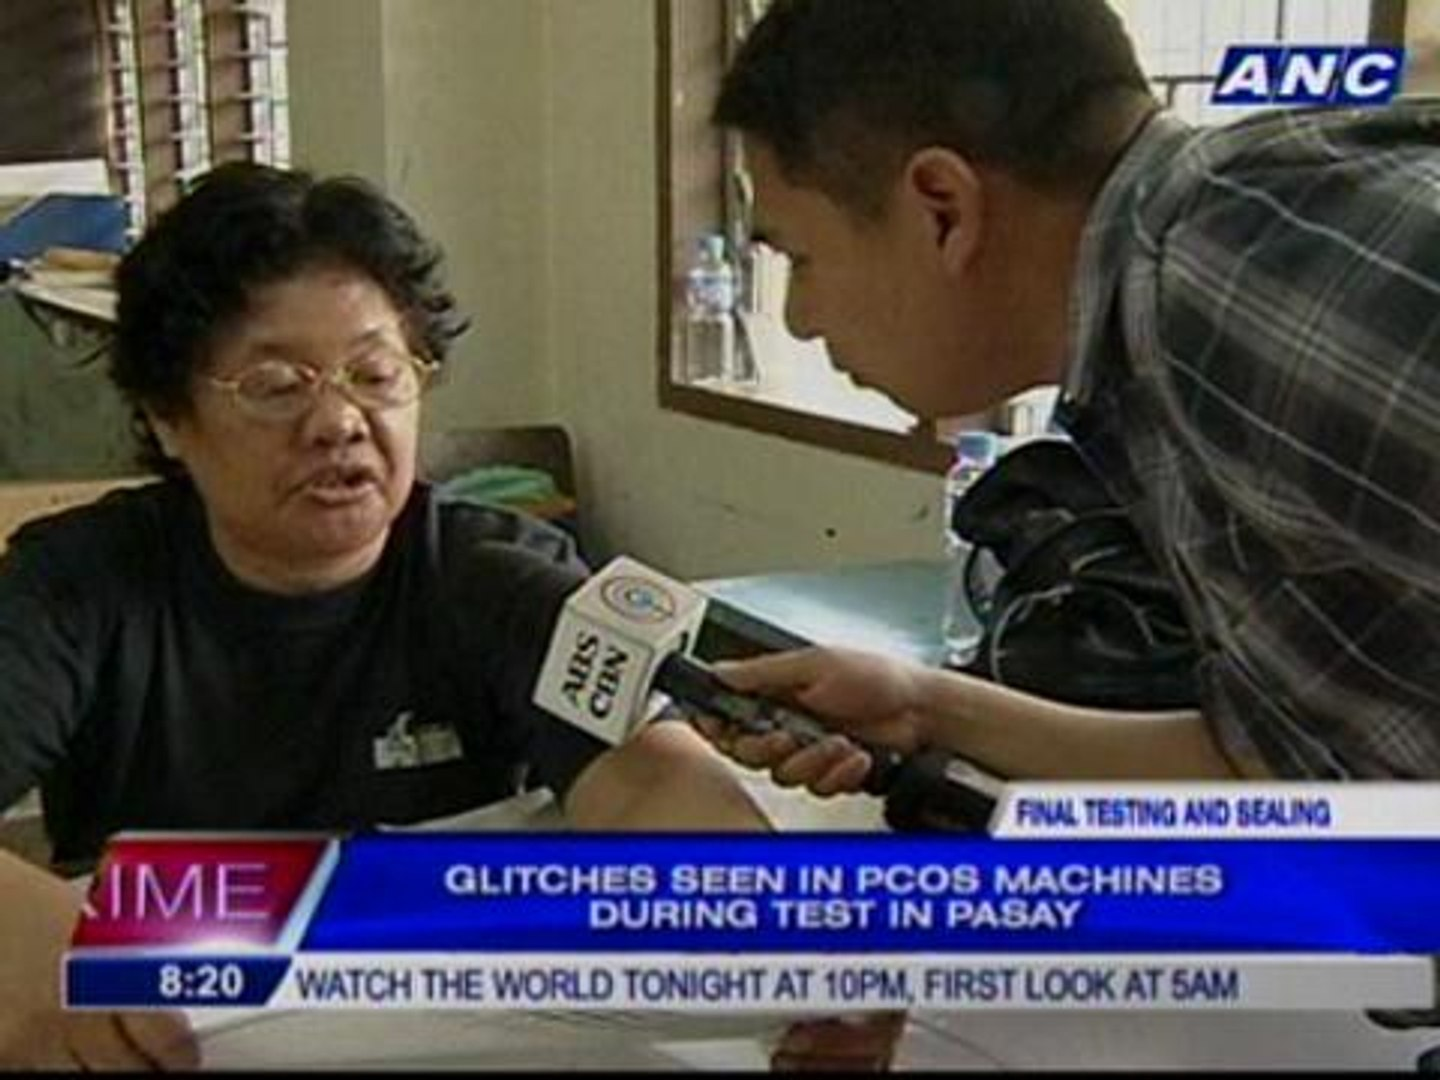 Glitches seen in PCOS machines during test in Pasay